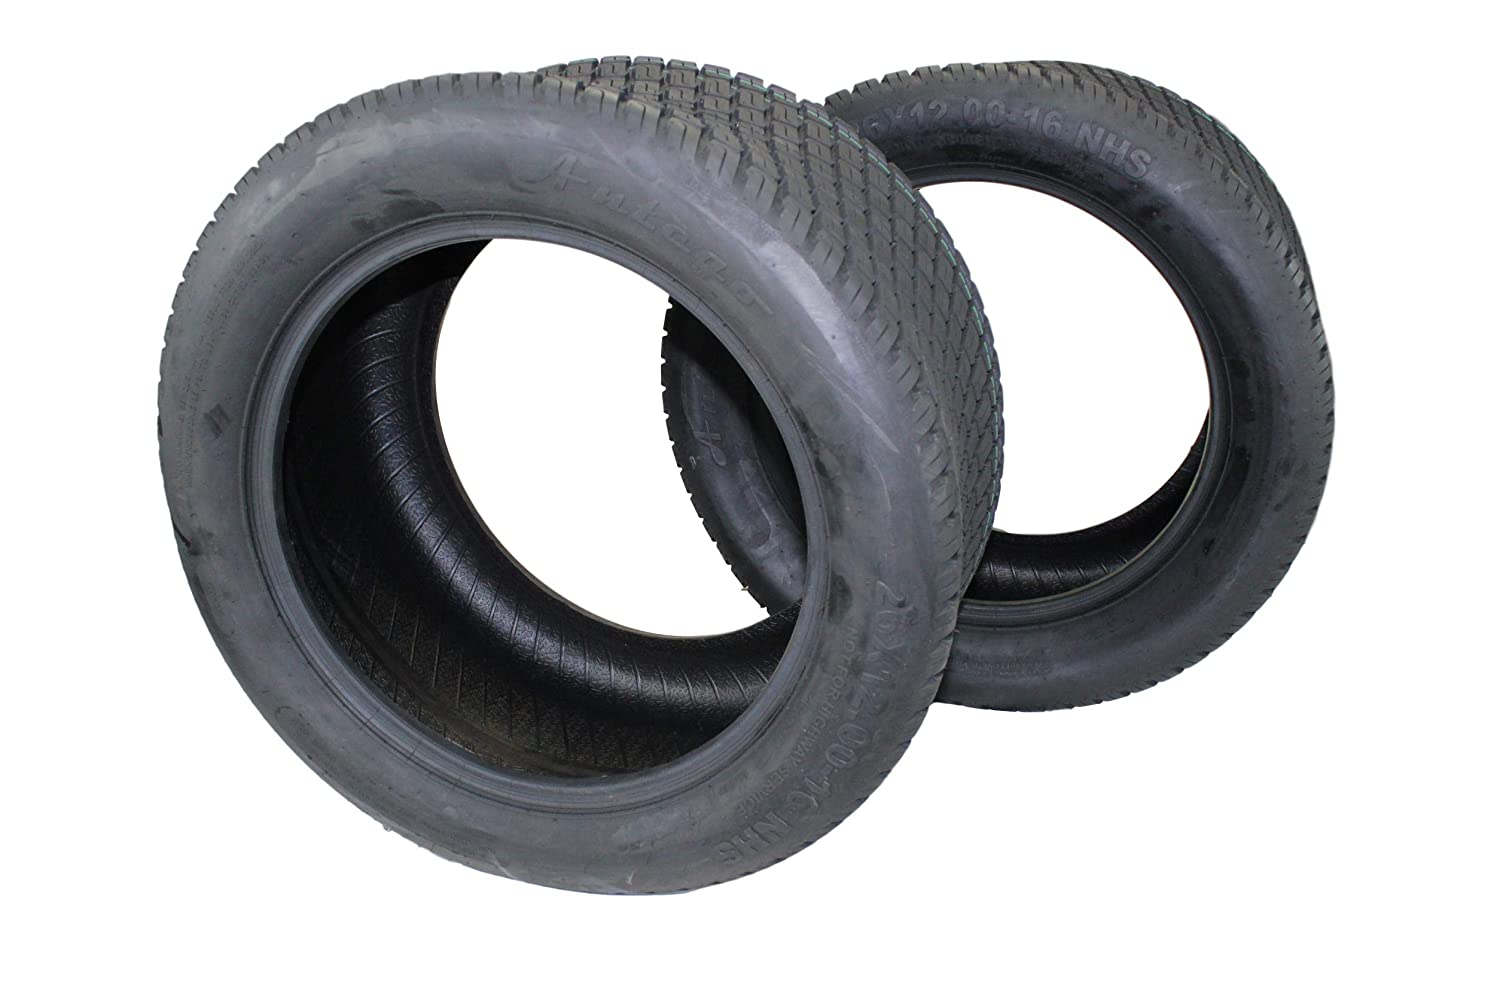 1 New 23x8.50-12 Antego Lawn Mower Garden Tractor 4 PLY Turf Tire FREE Shipping